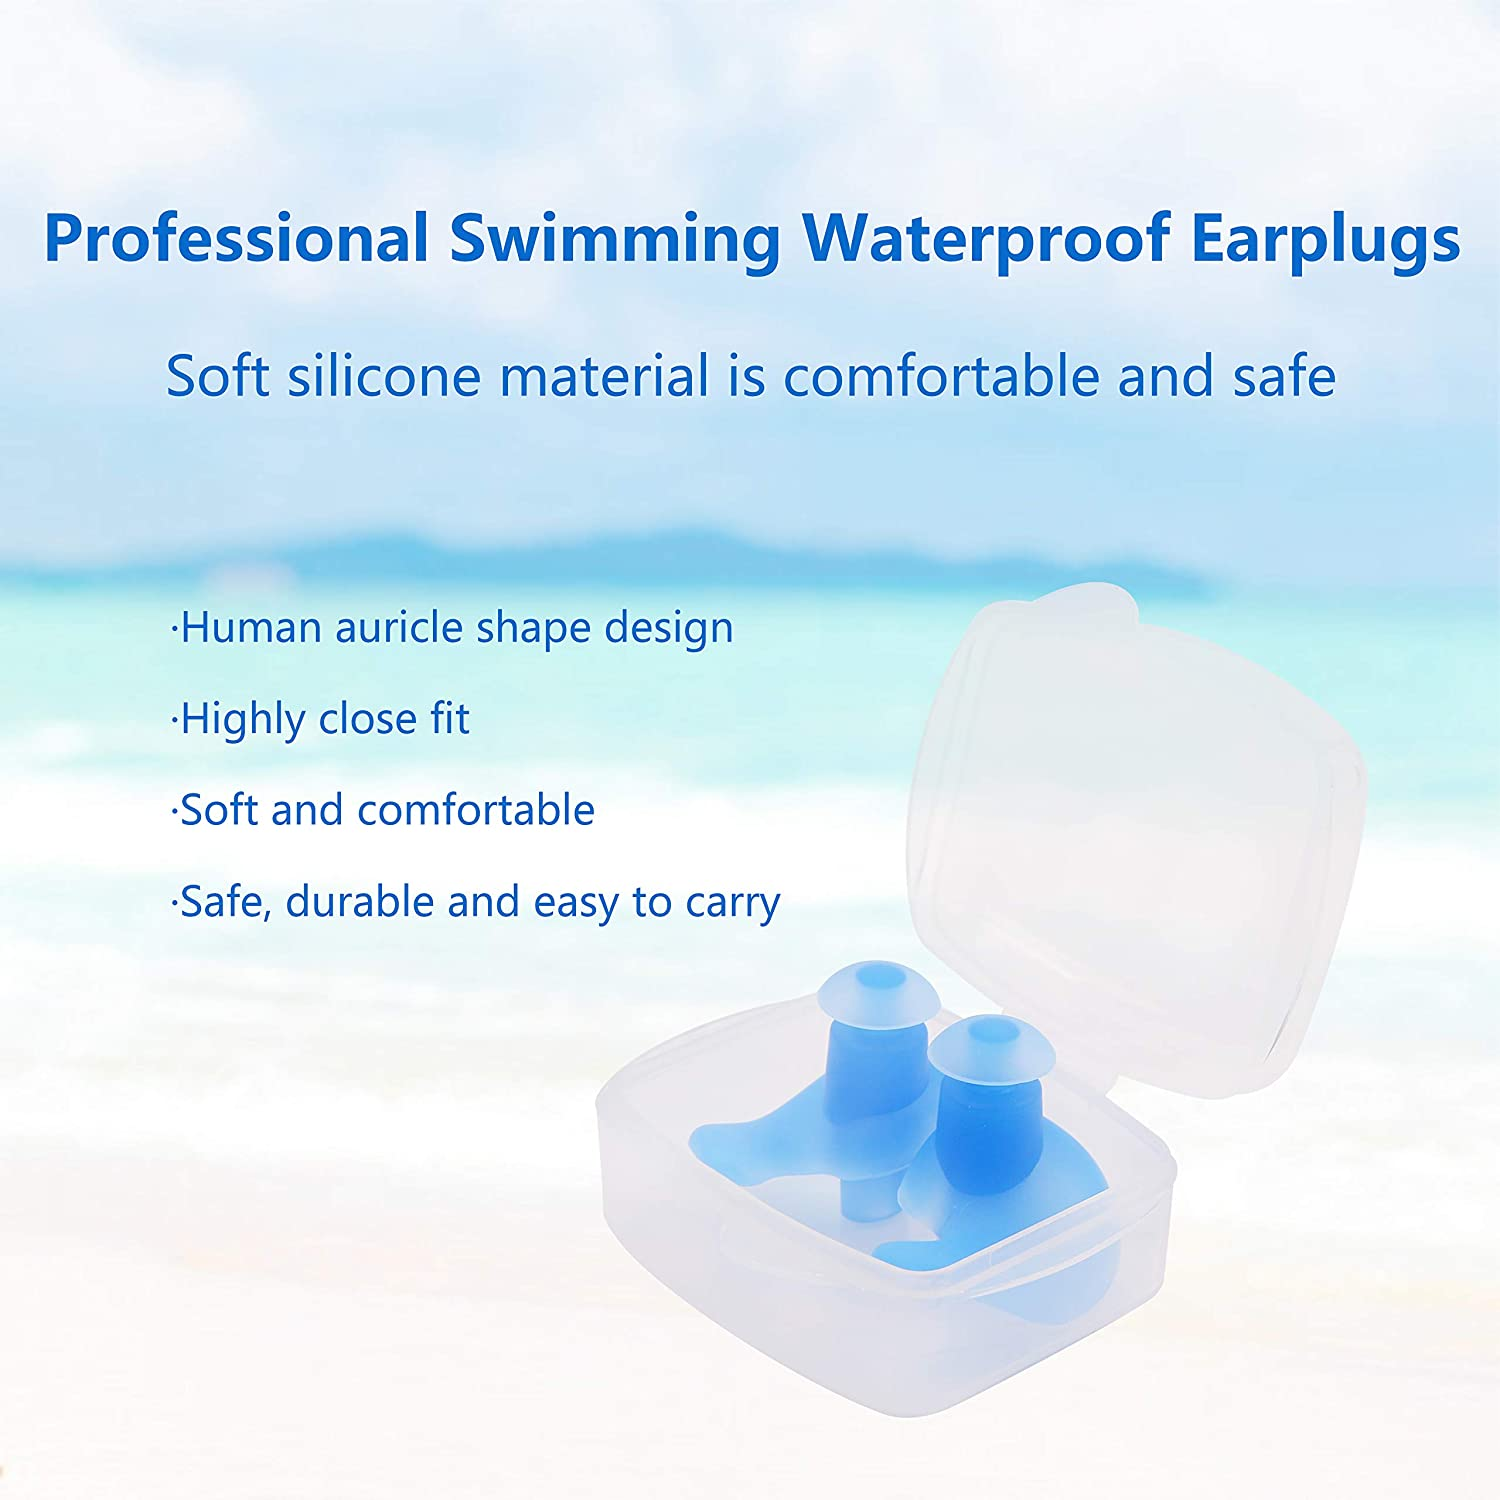 Trcviove UTT Spiral Swimming Earplugs Professional Silicone Earplugs for Swimming Showering Surfing and Other Water Sports Adult Size 4-Pair Pack